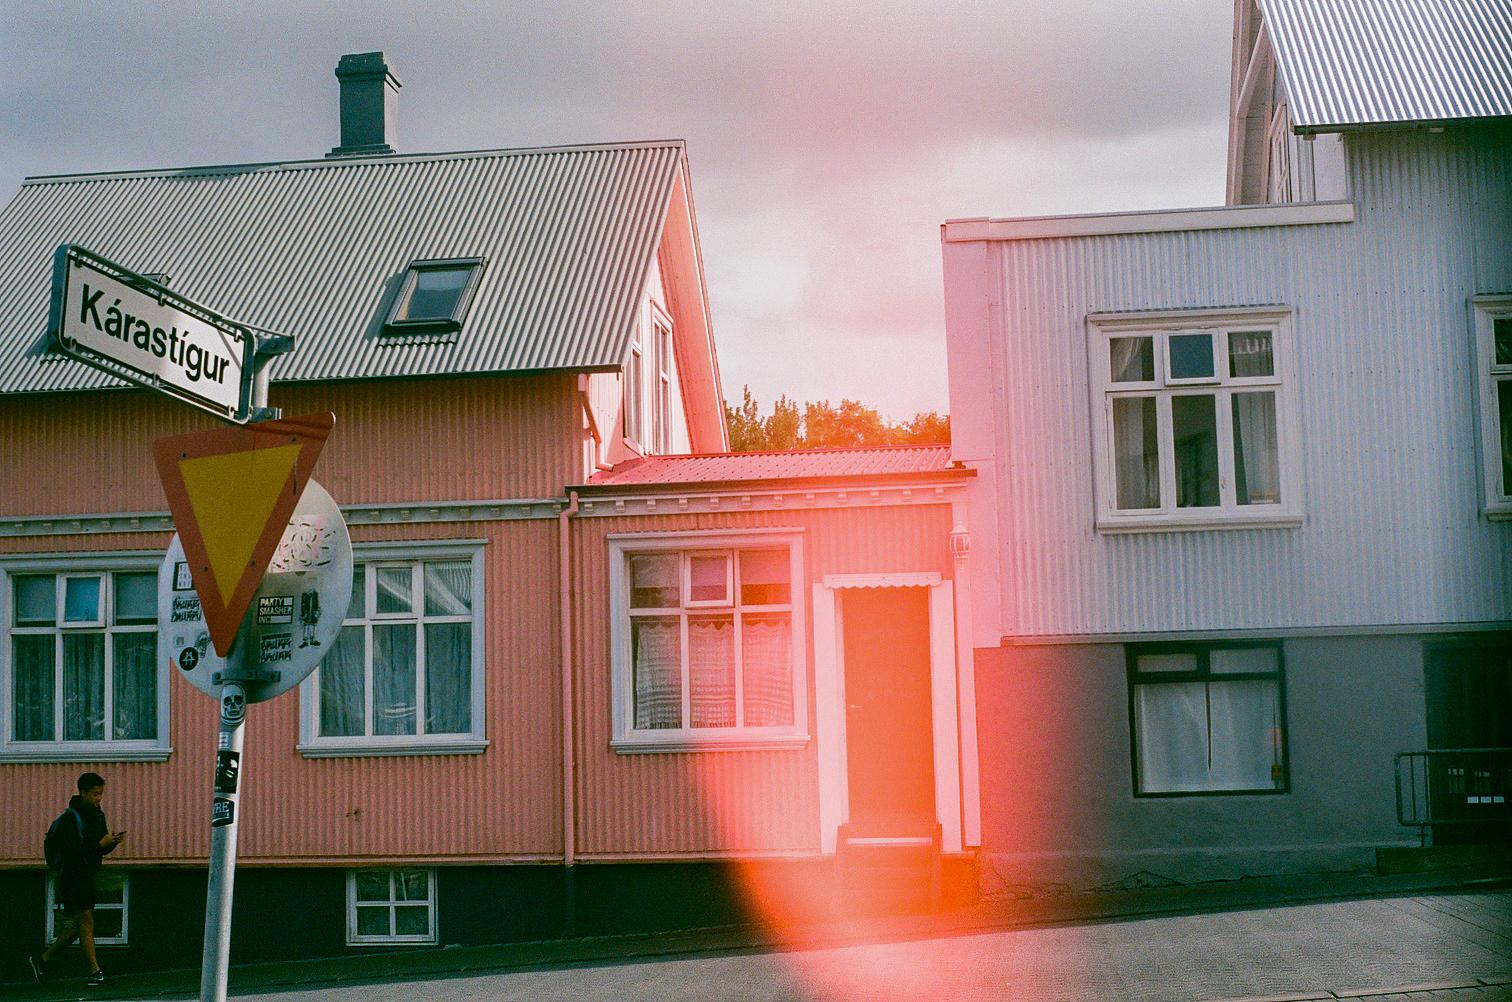 Reykjavik, Minolta SRT 201, shot on expired Kodak gold 400